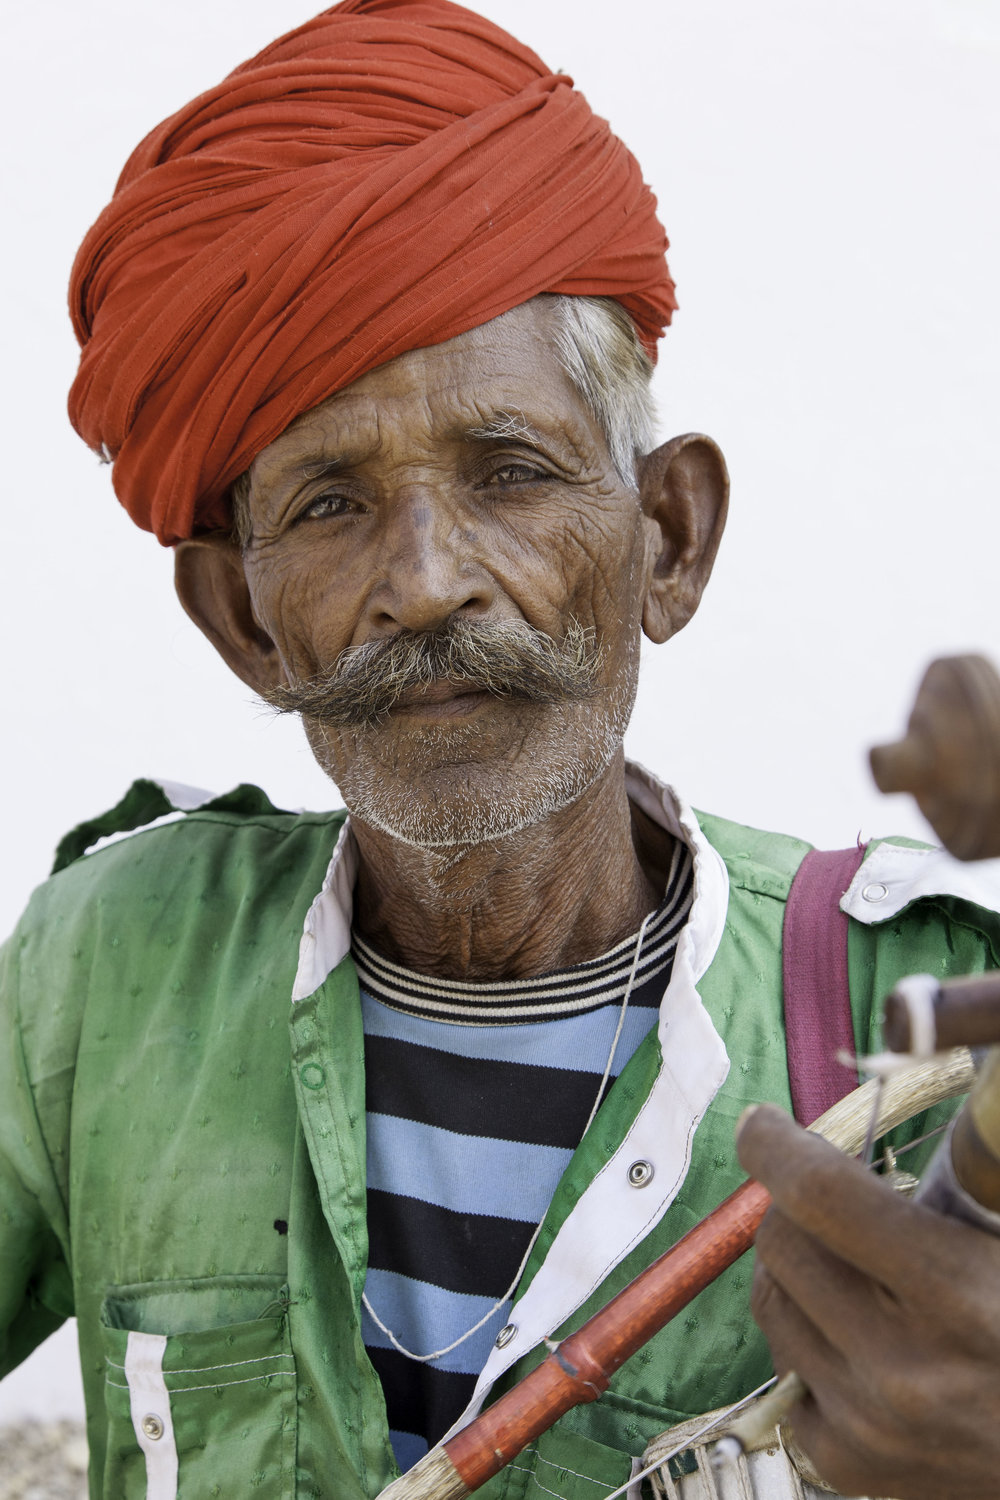 A street musician with his  Ravanahatta , a single stringed instrument with an underslung, coin purse-like bag, or bells attached to the bow. He played beautiful, wailing melodies on the string while occasionally jostling the  instrument for a bit of a chingy percussion accompaniment.